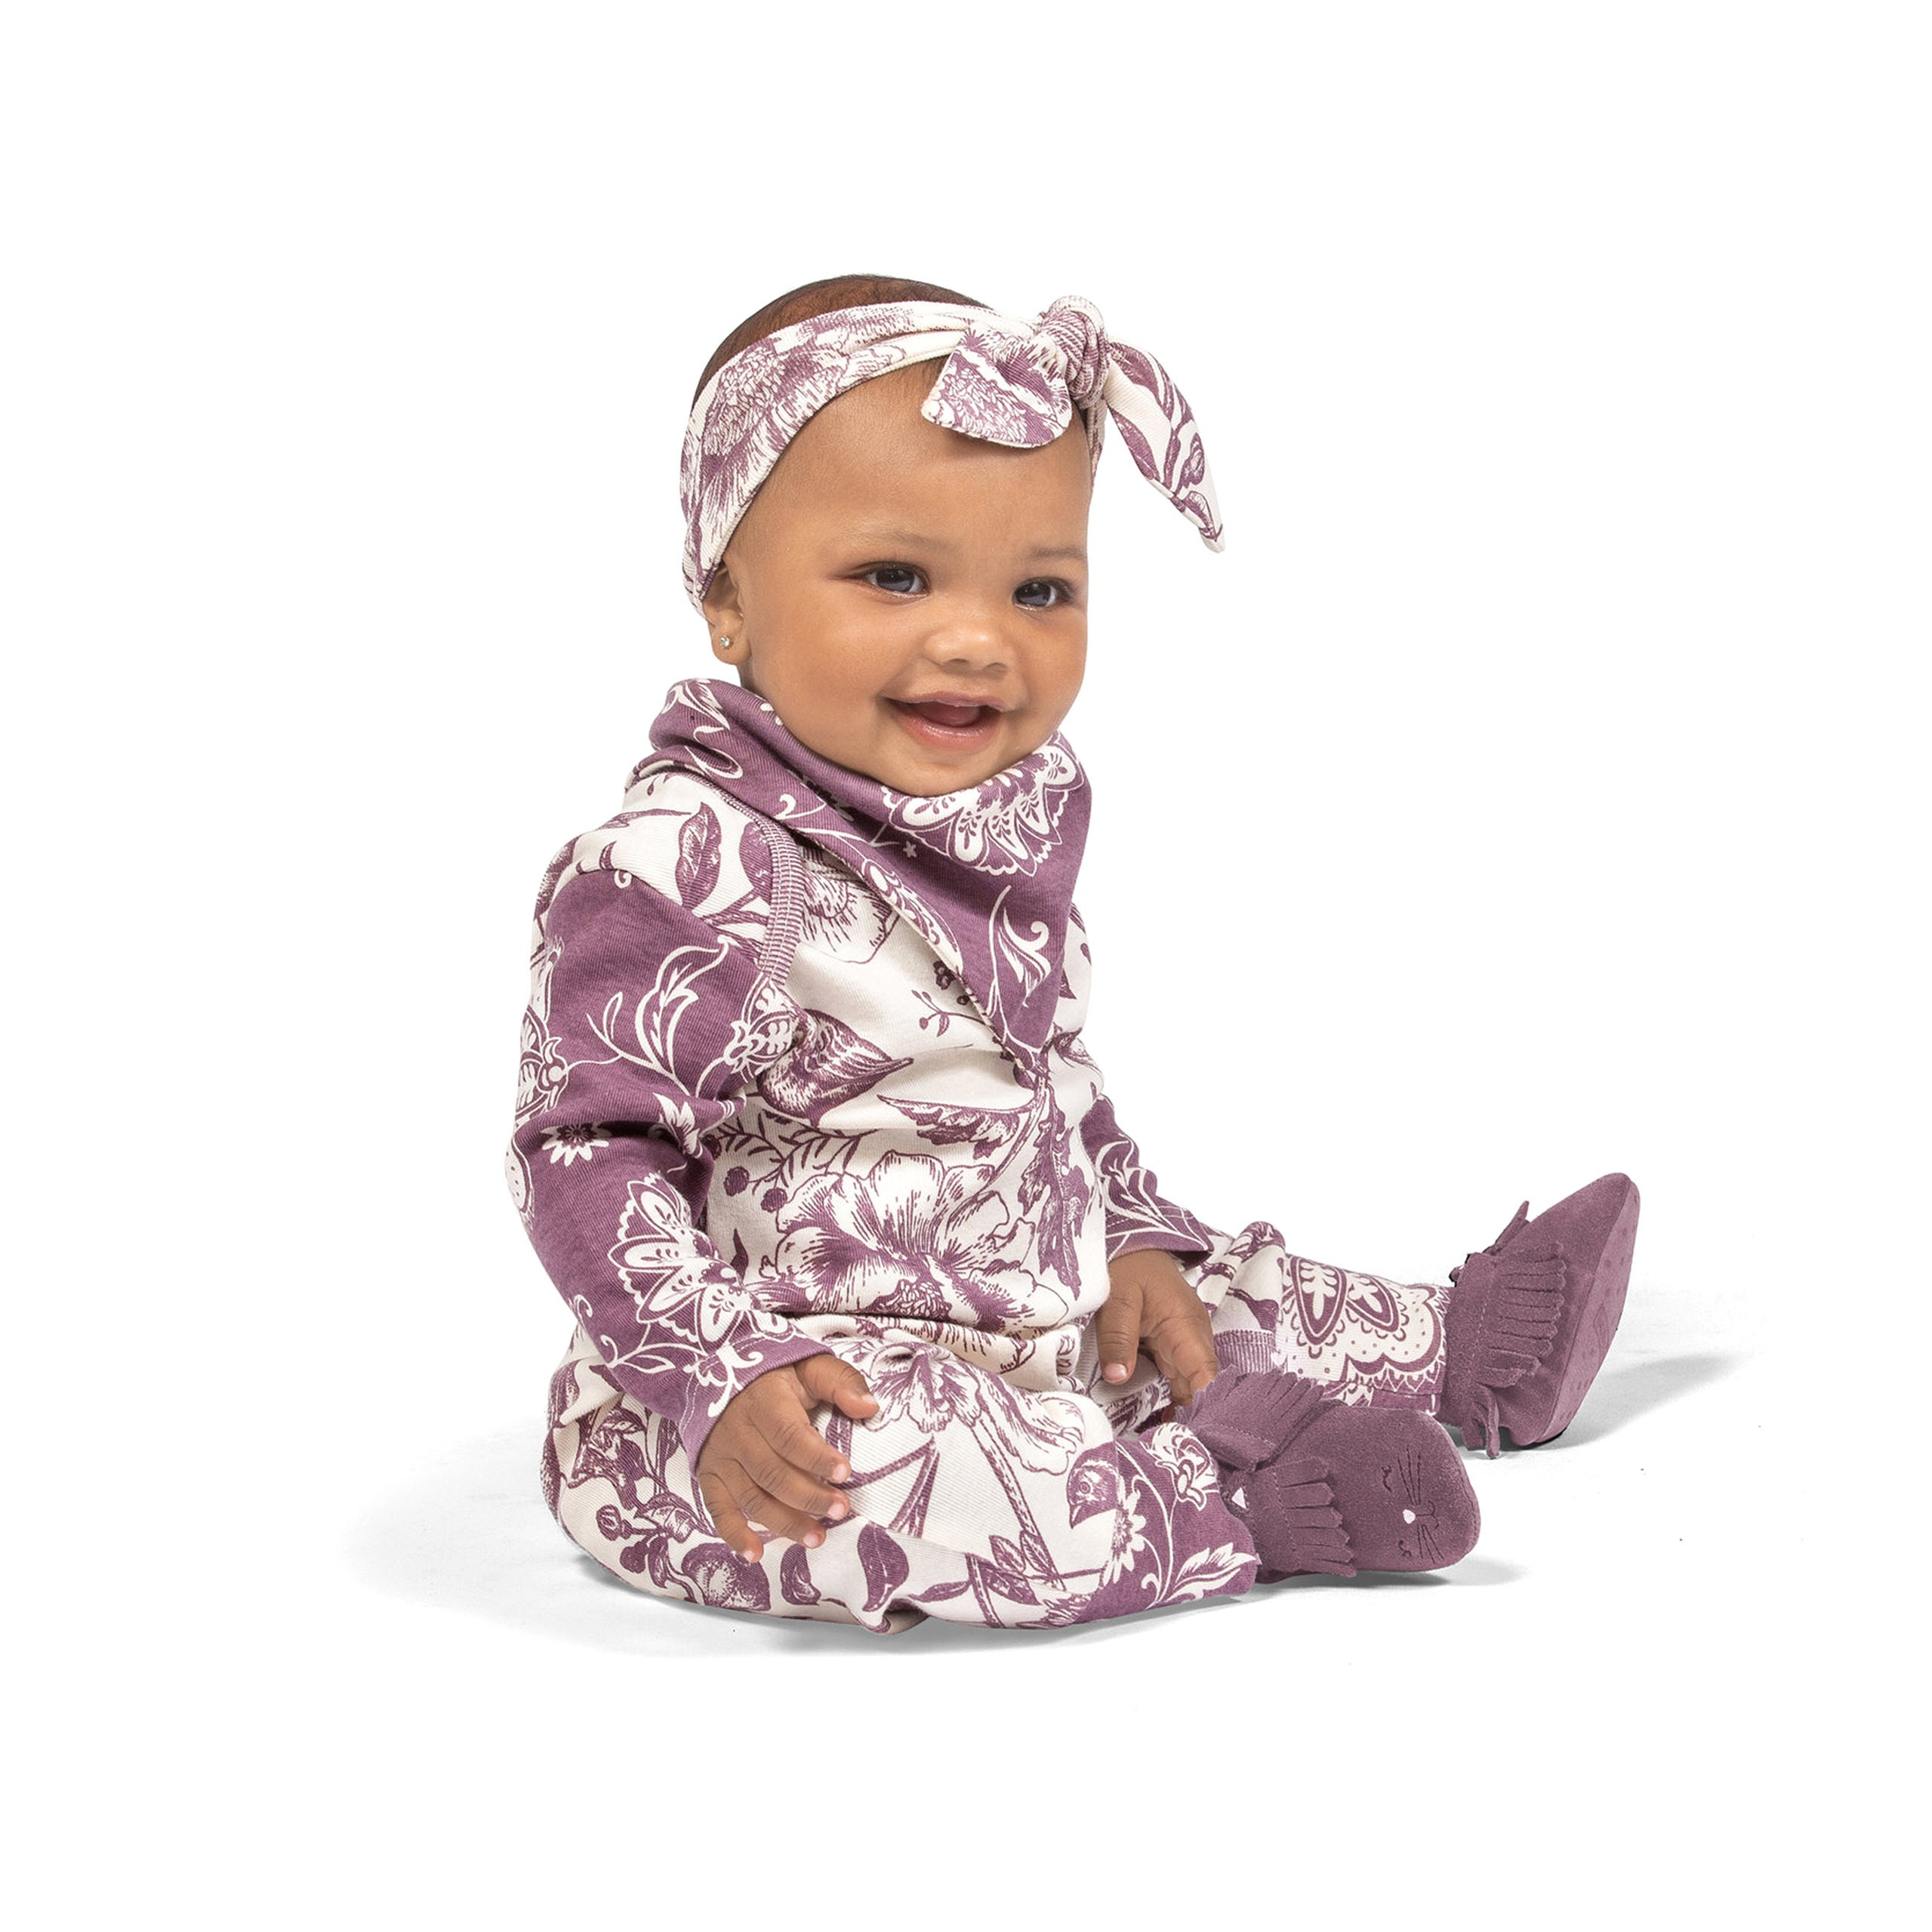 Baby Girl Clothes, Newborn Outfit, Newborn Baby Girl Outfit, Baby ...